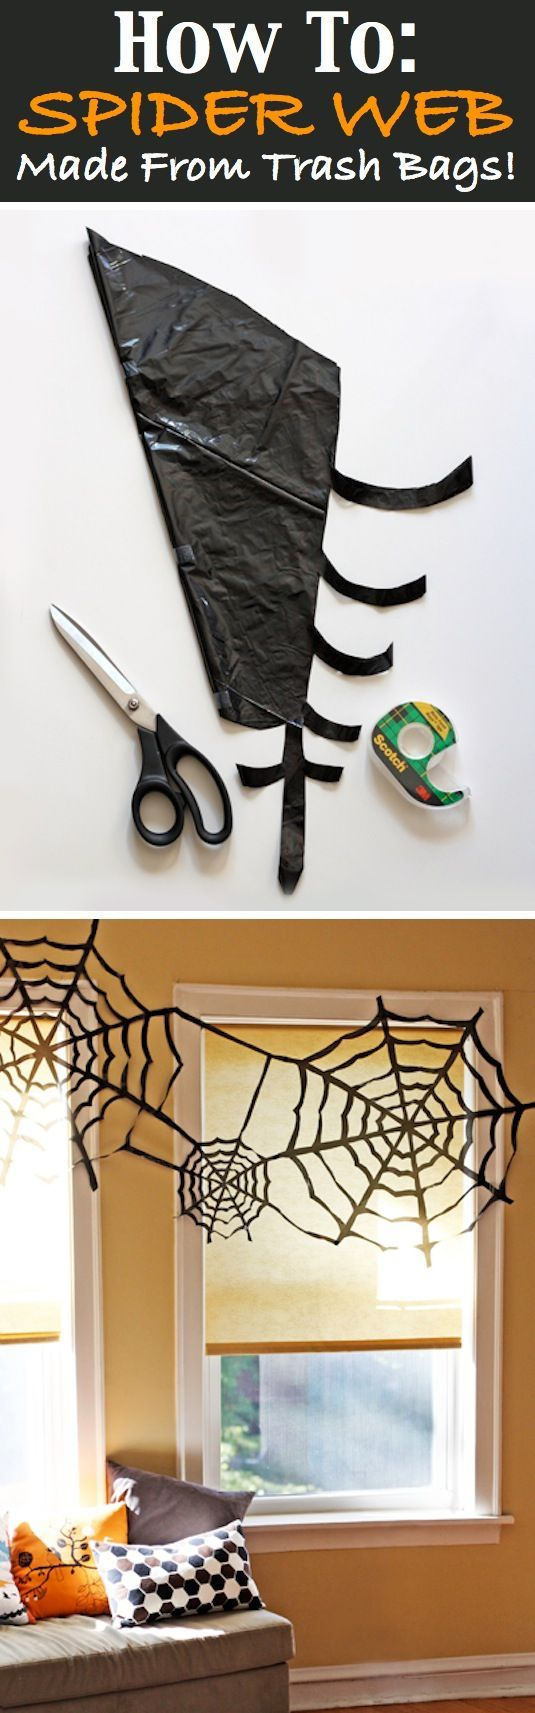 Homemade Halloween Decorations: